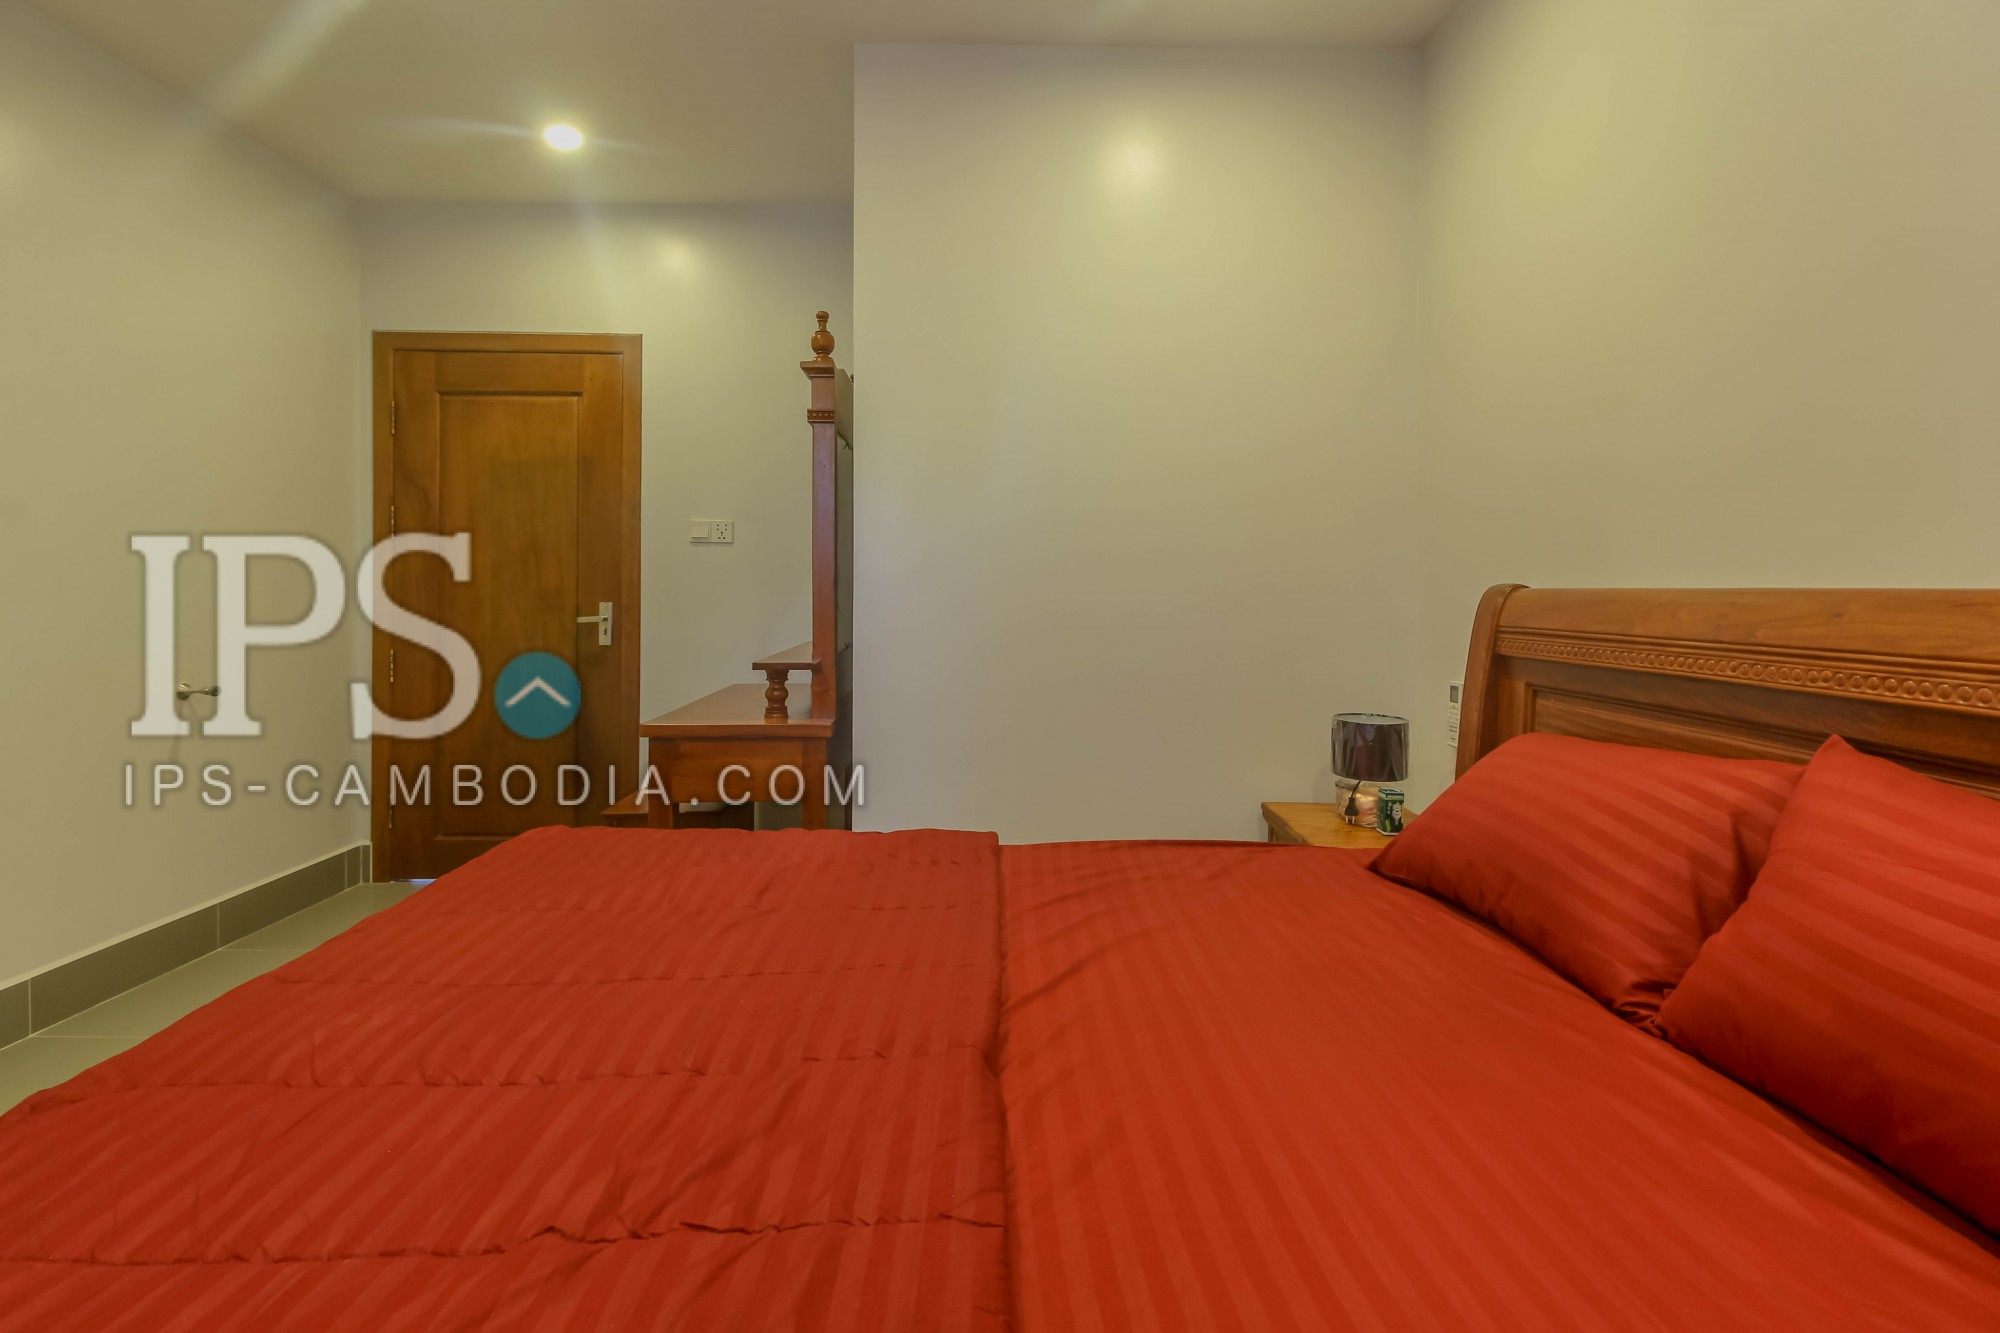 Brand-new 1 Bedroom Flat For Rent - Wat Damnak, Siem Reap